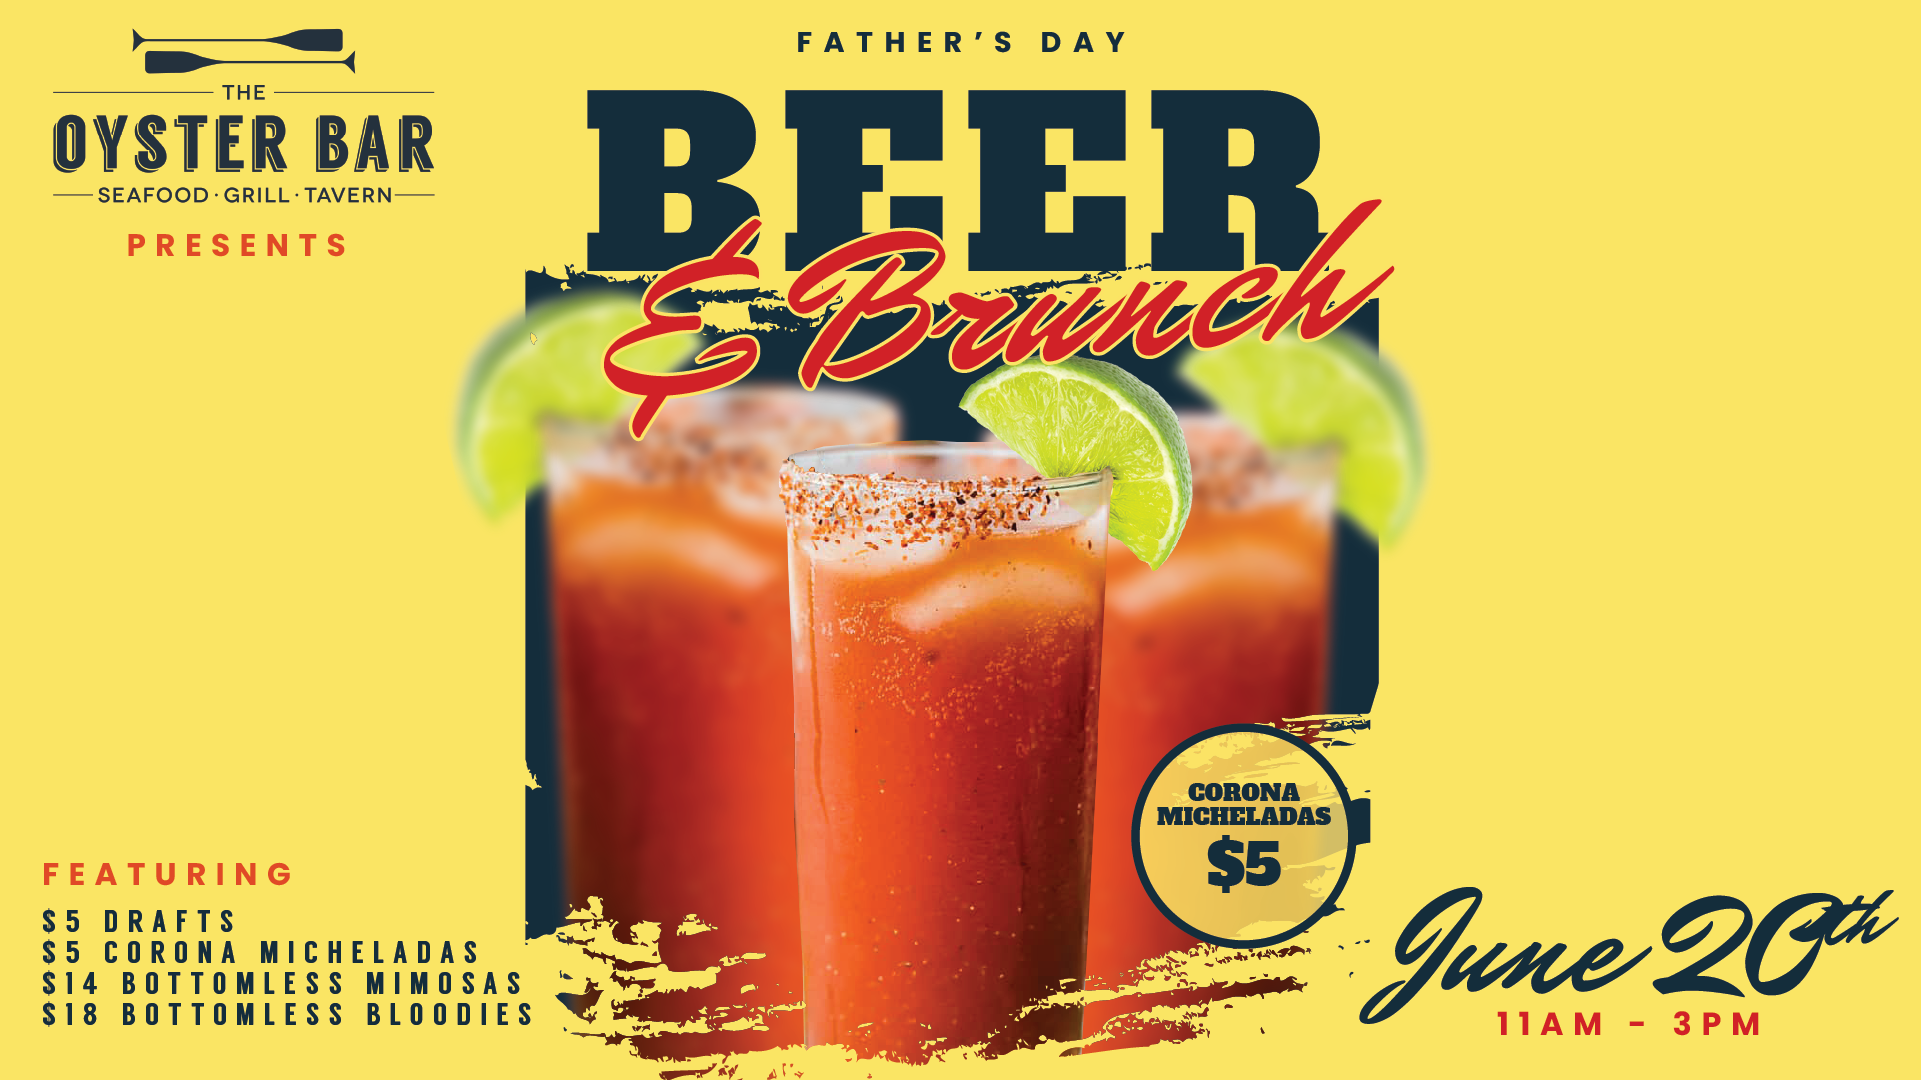 FATHER'S DAY BEER AND BRUNCH CELEBRATION AT THE OYSTER BAR!